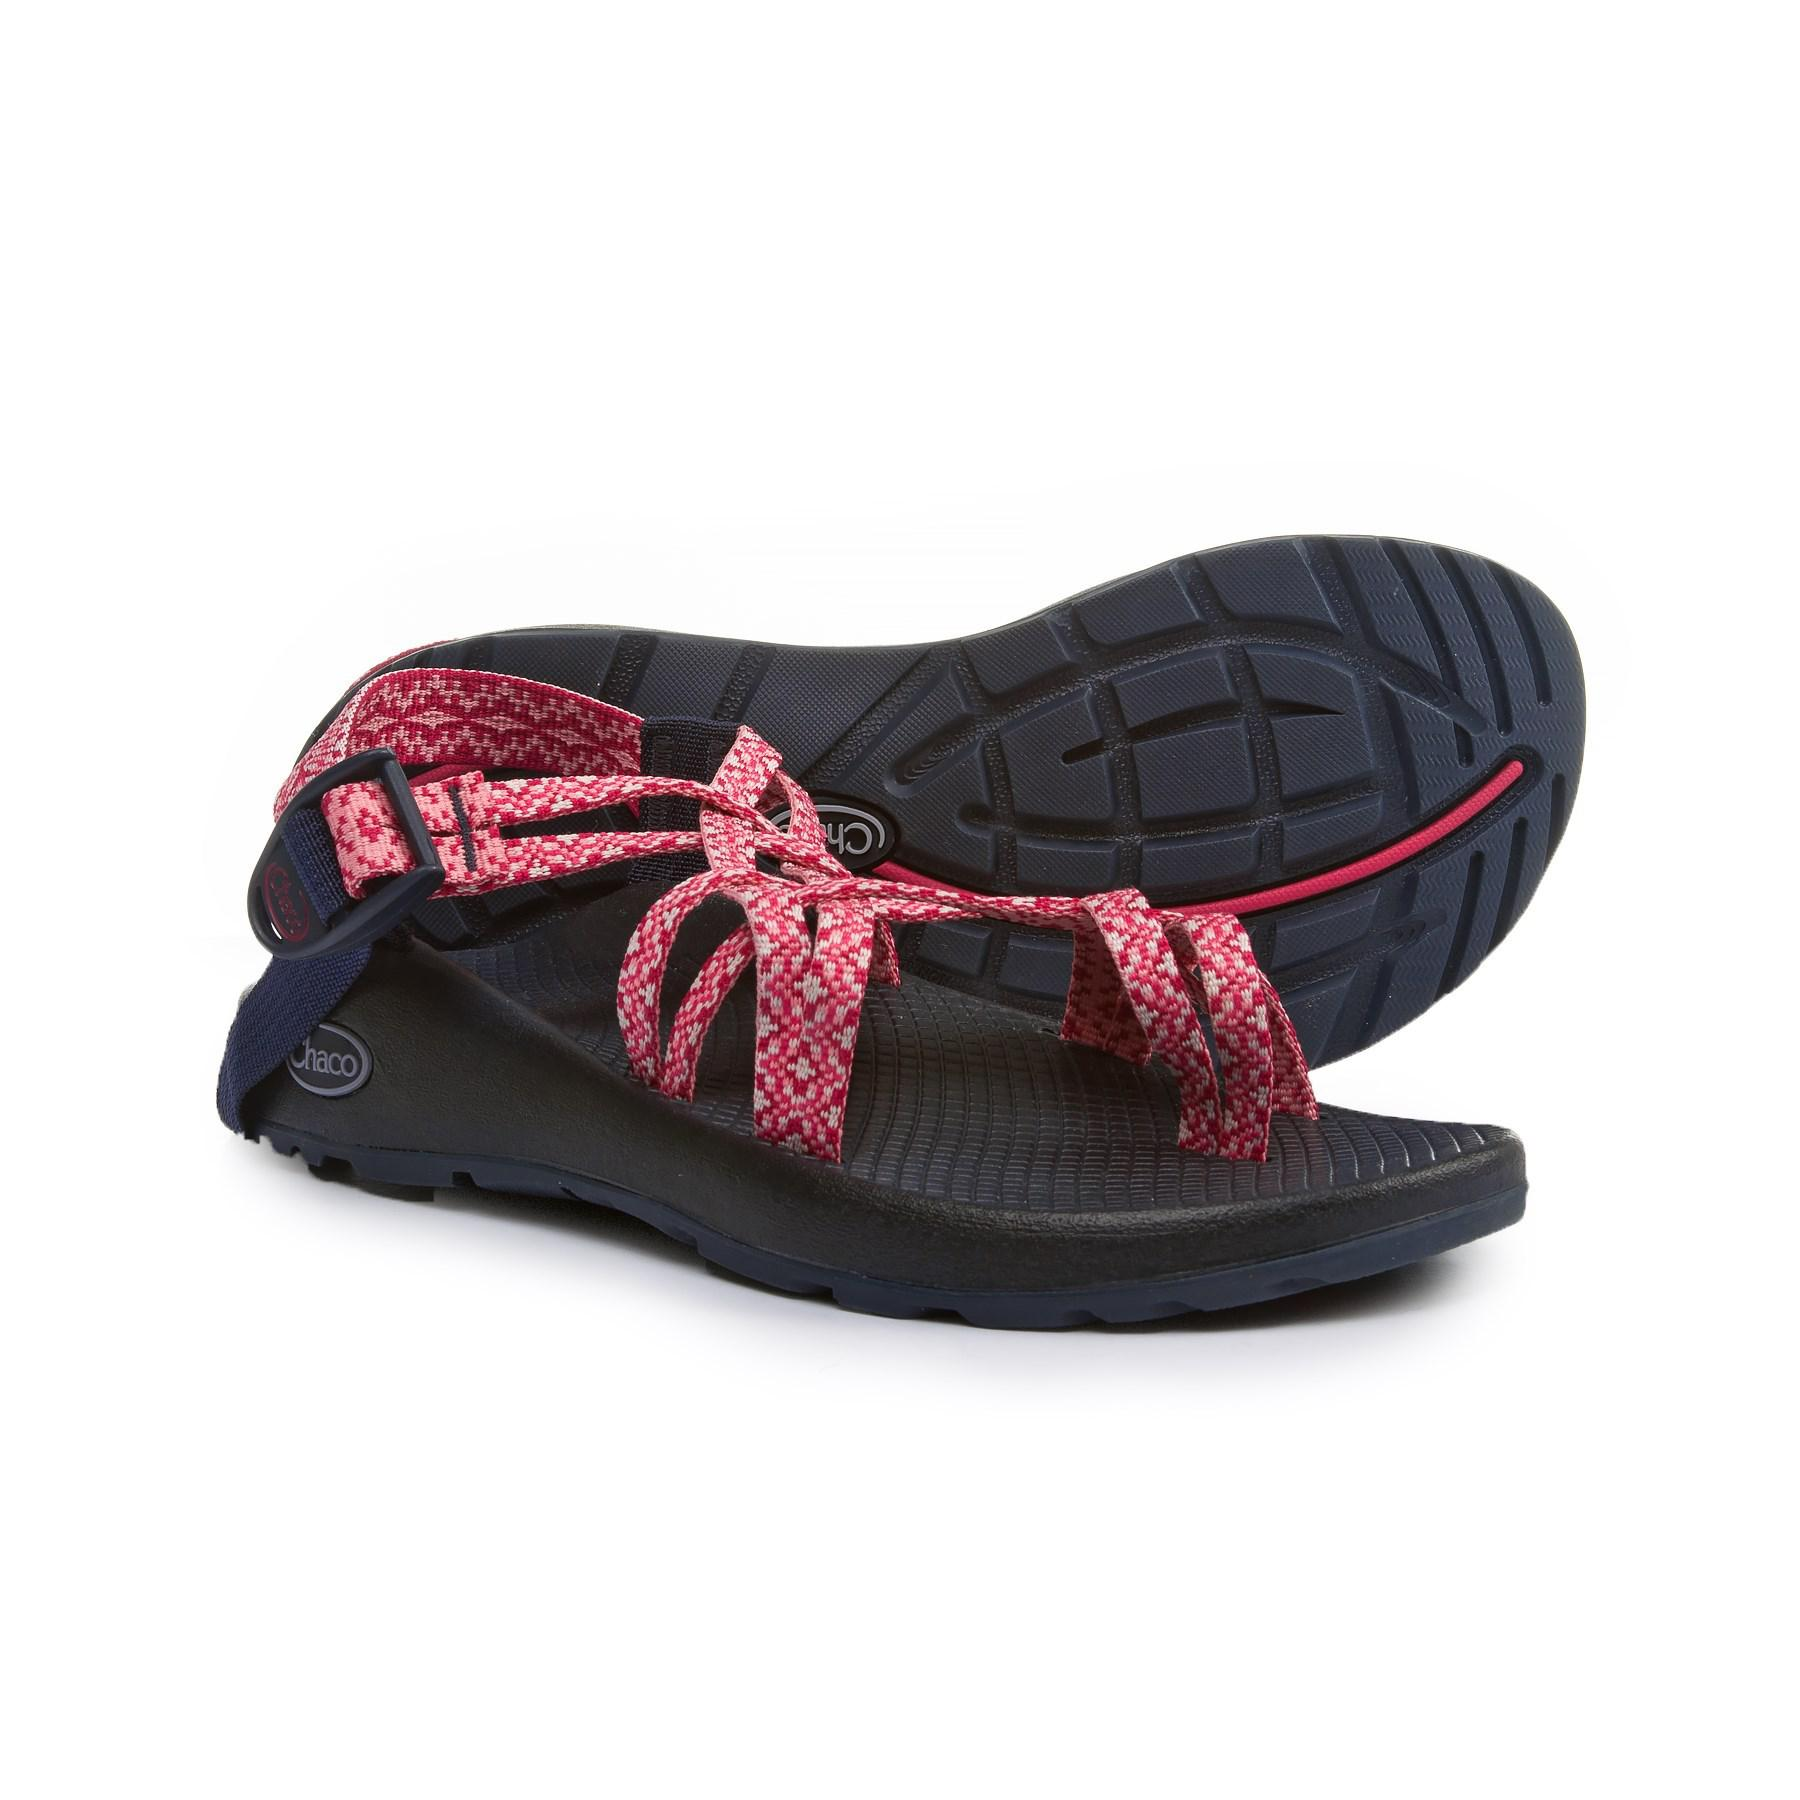 b3aa29deffdc Lyst - Chaco Zx 2® Classic Sport Sandals (for Women)